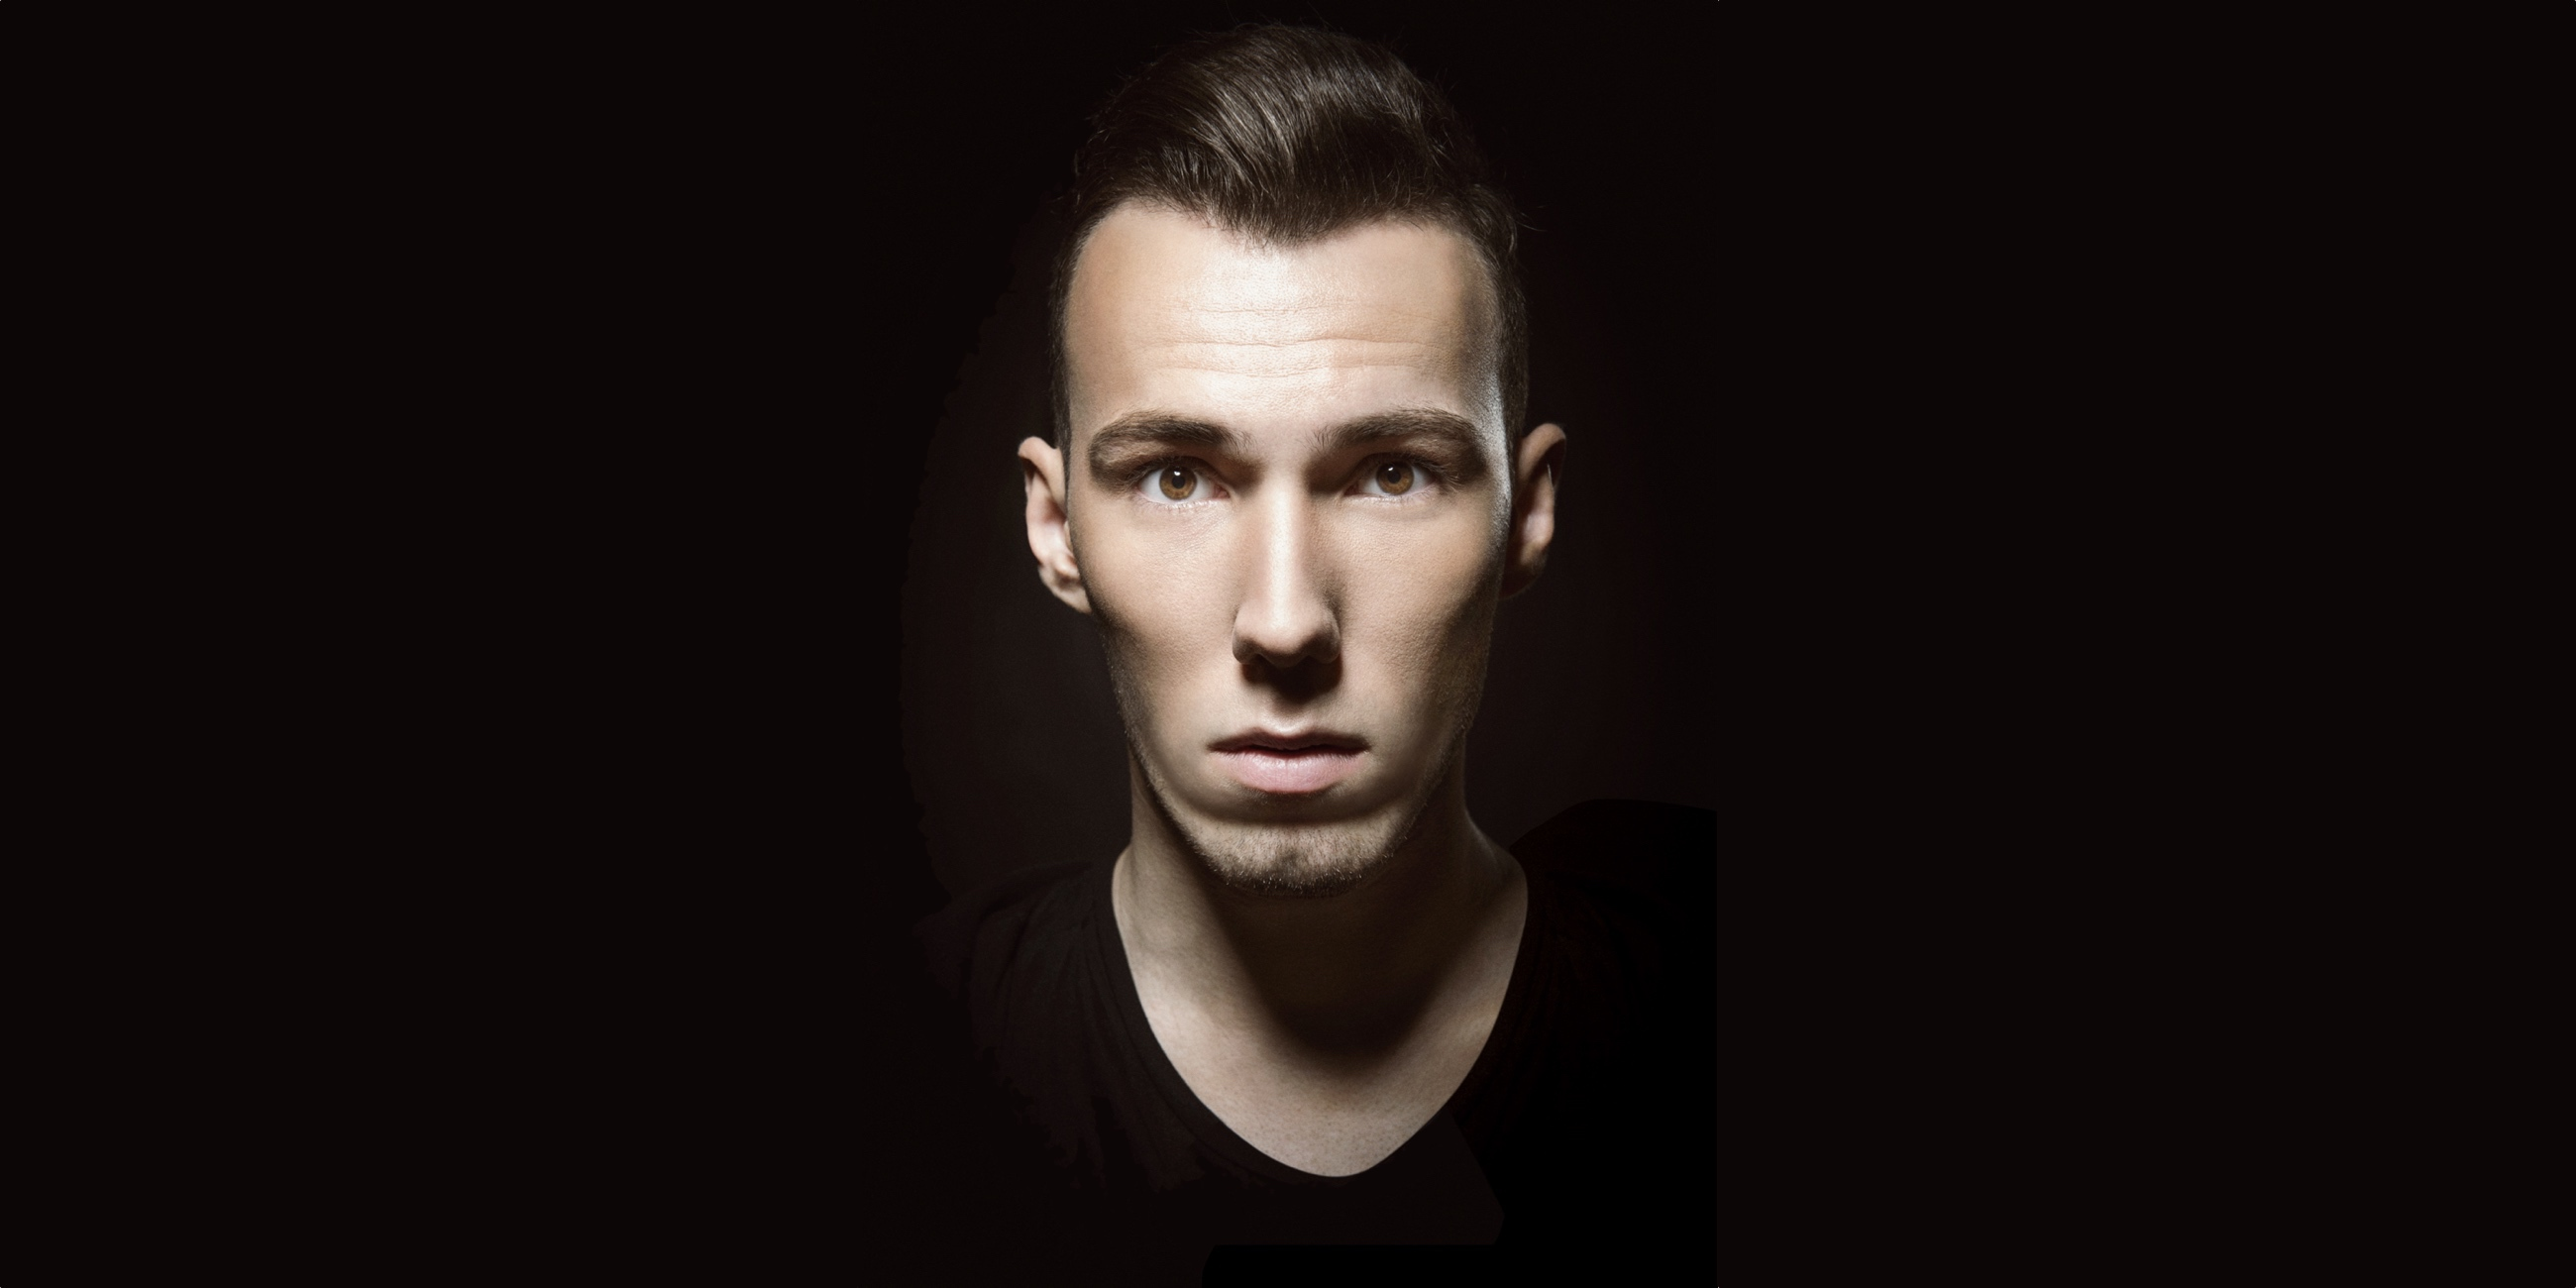 Tom Swoon Wallpaper